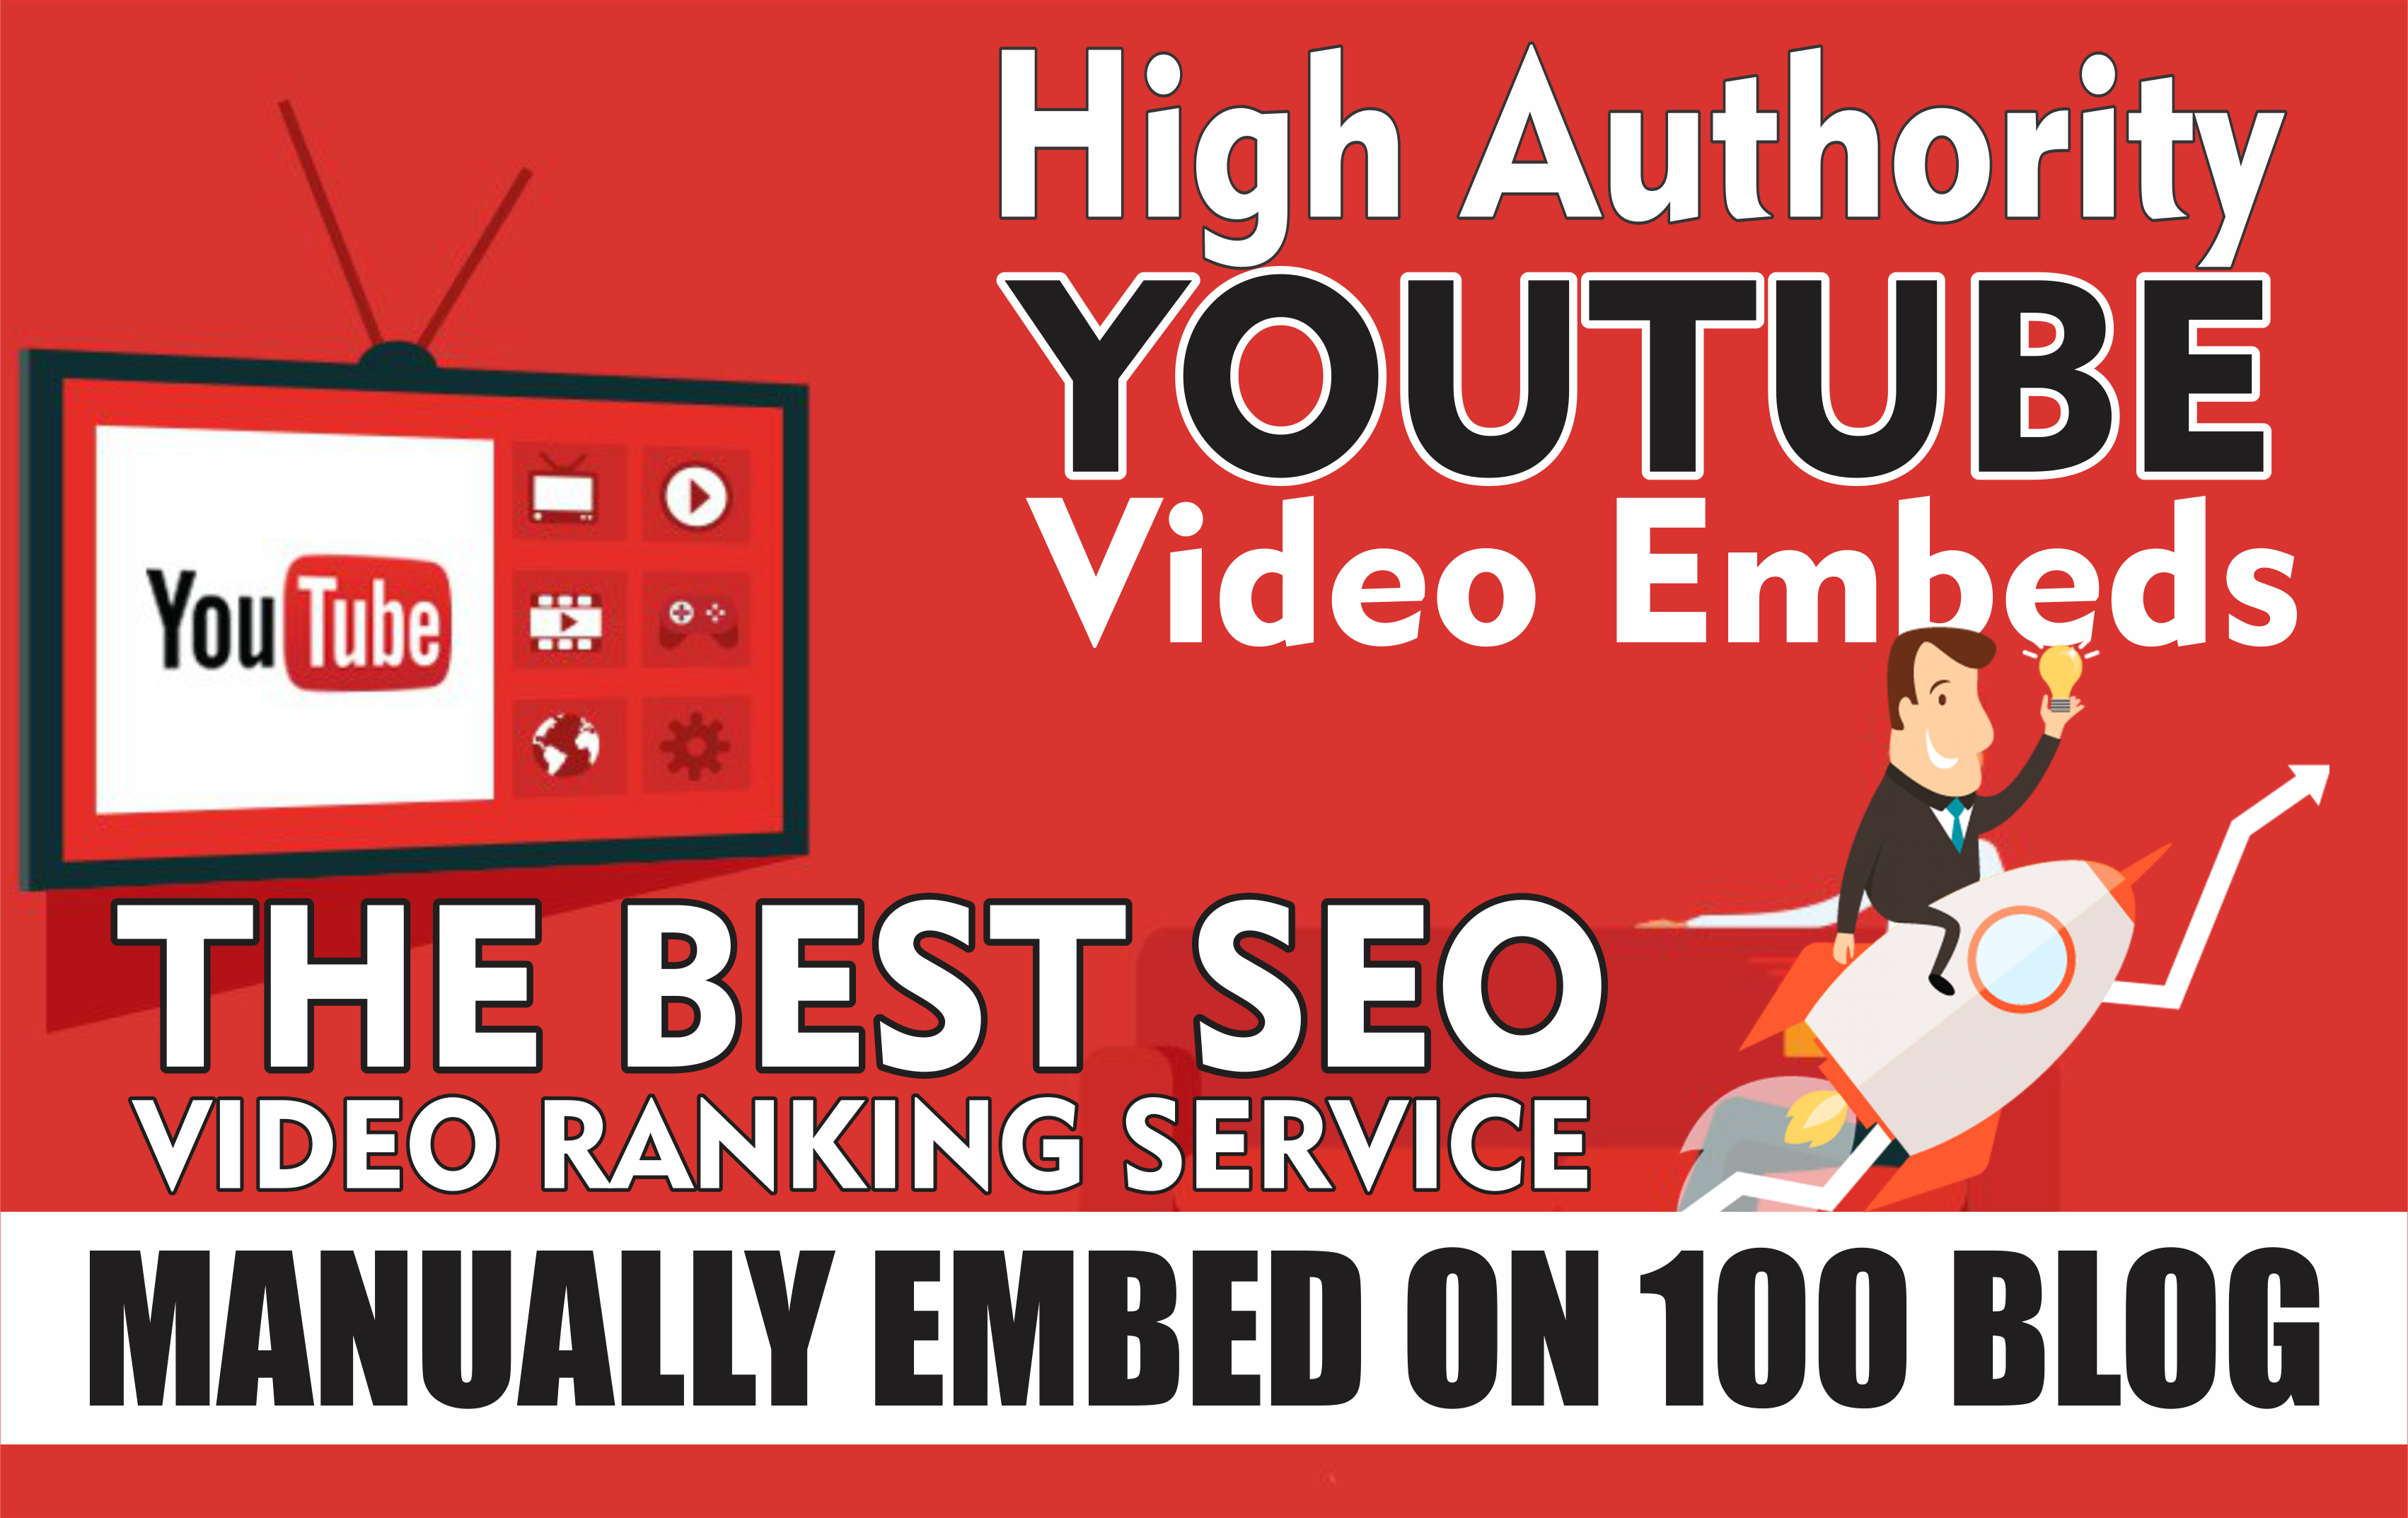 Manually Embed And Share Your Youtube Video On 100 Blog